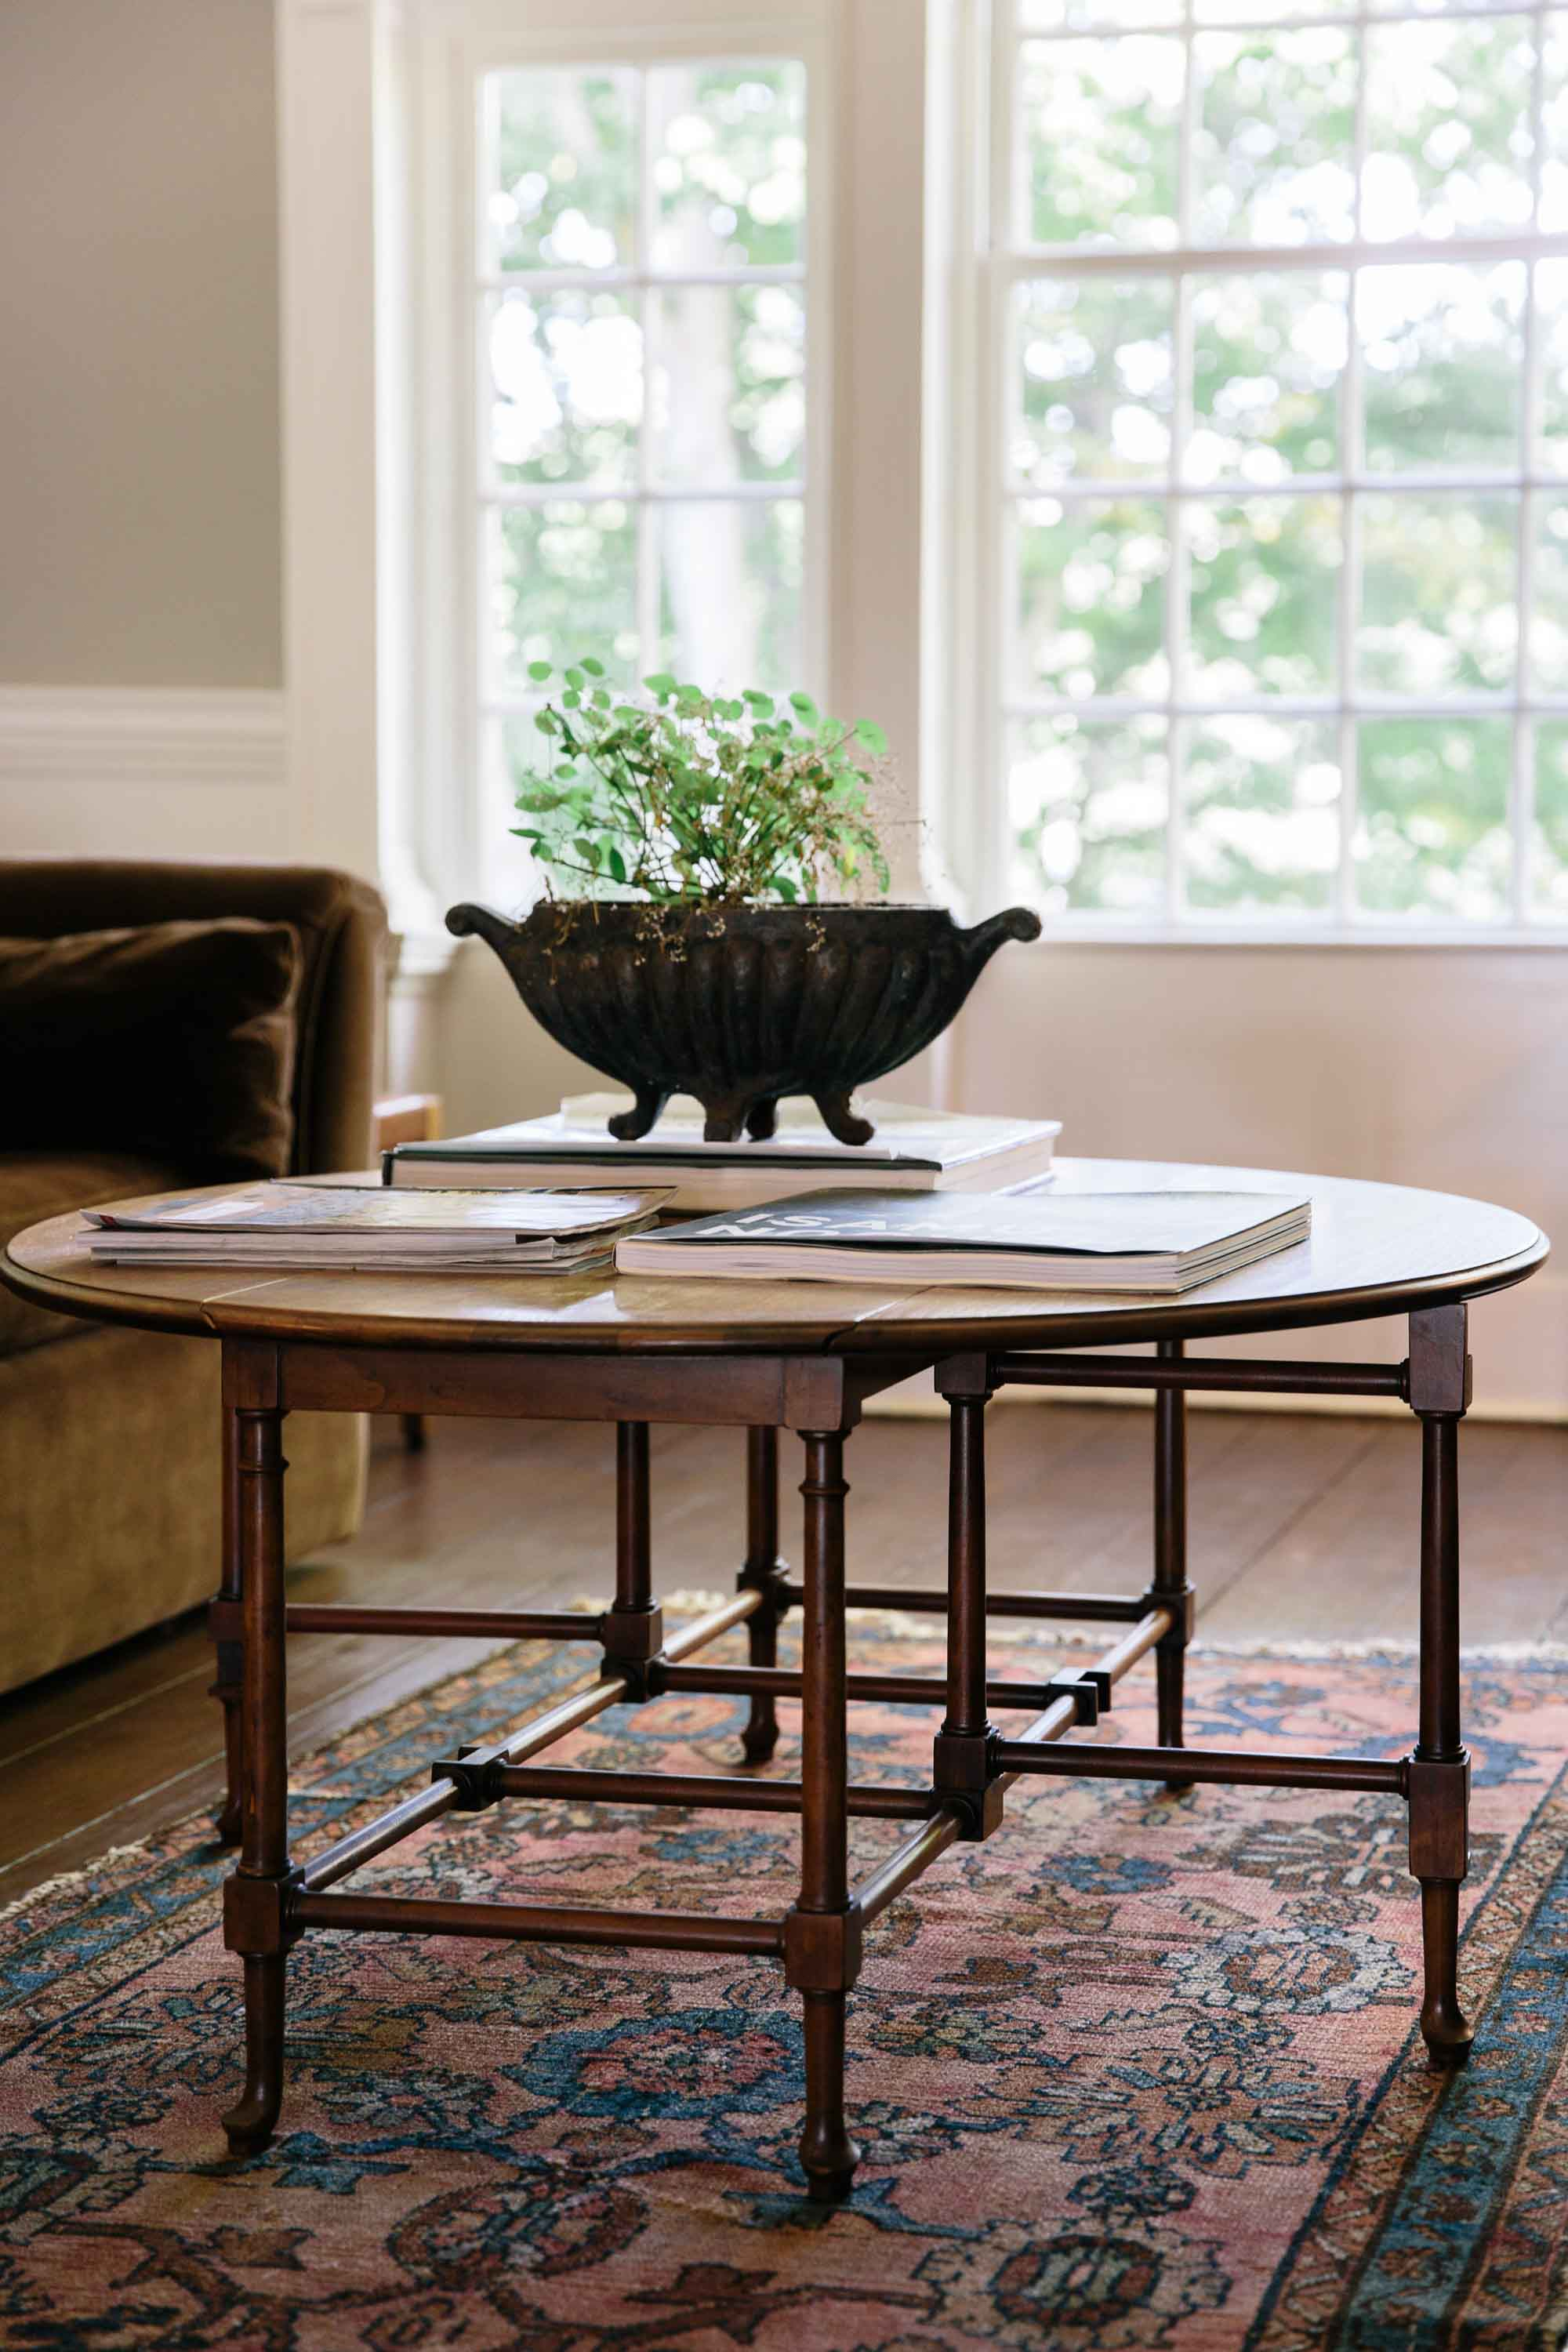 Antique table and Oriental rug